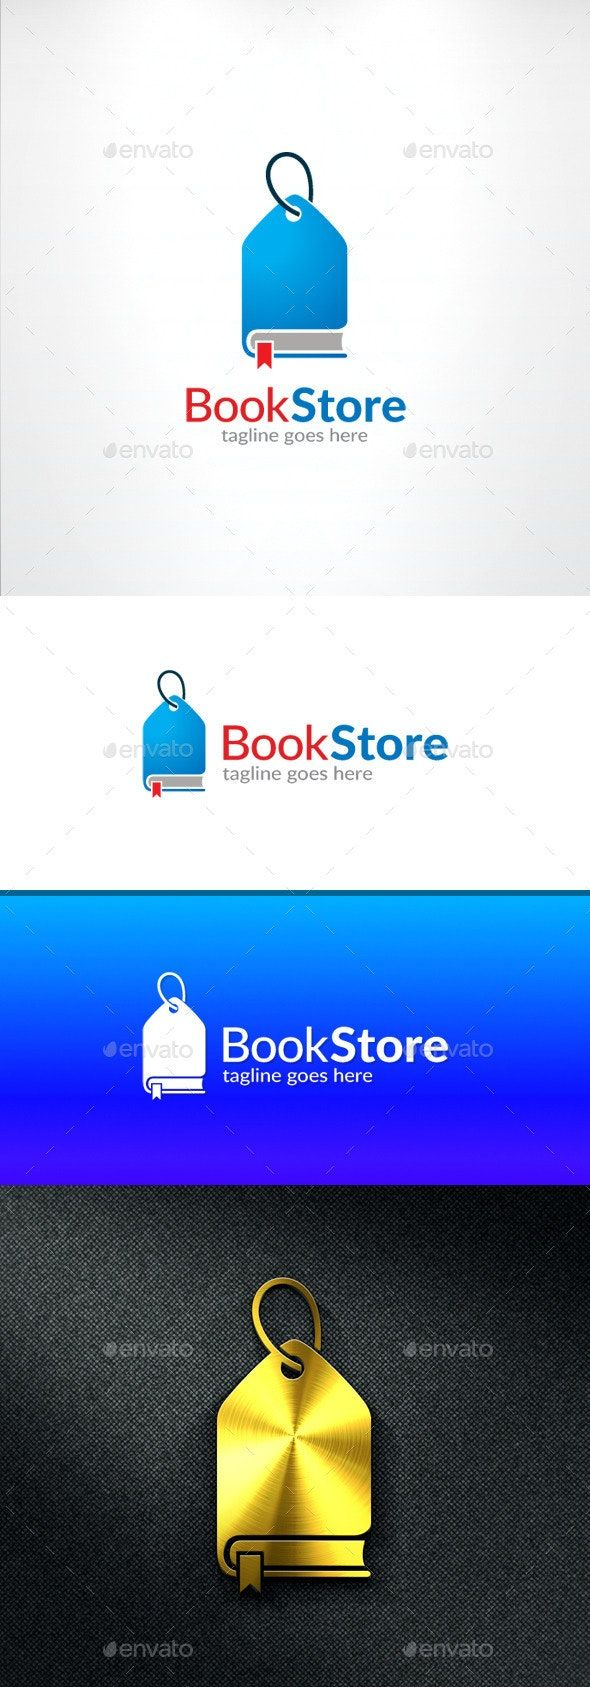 Book Store Logo Object Logo Design Template created by